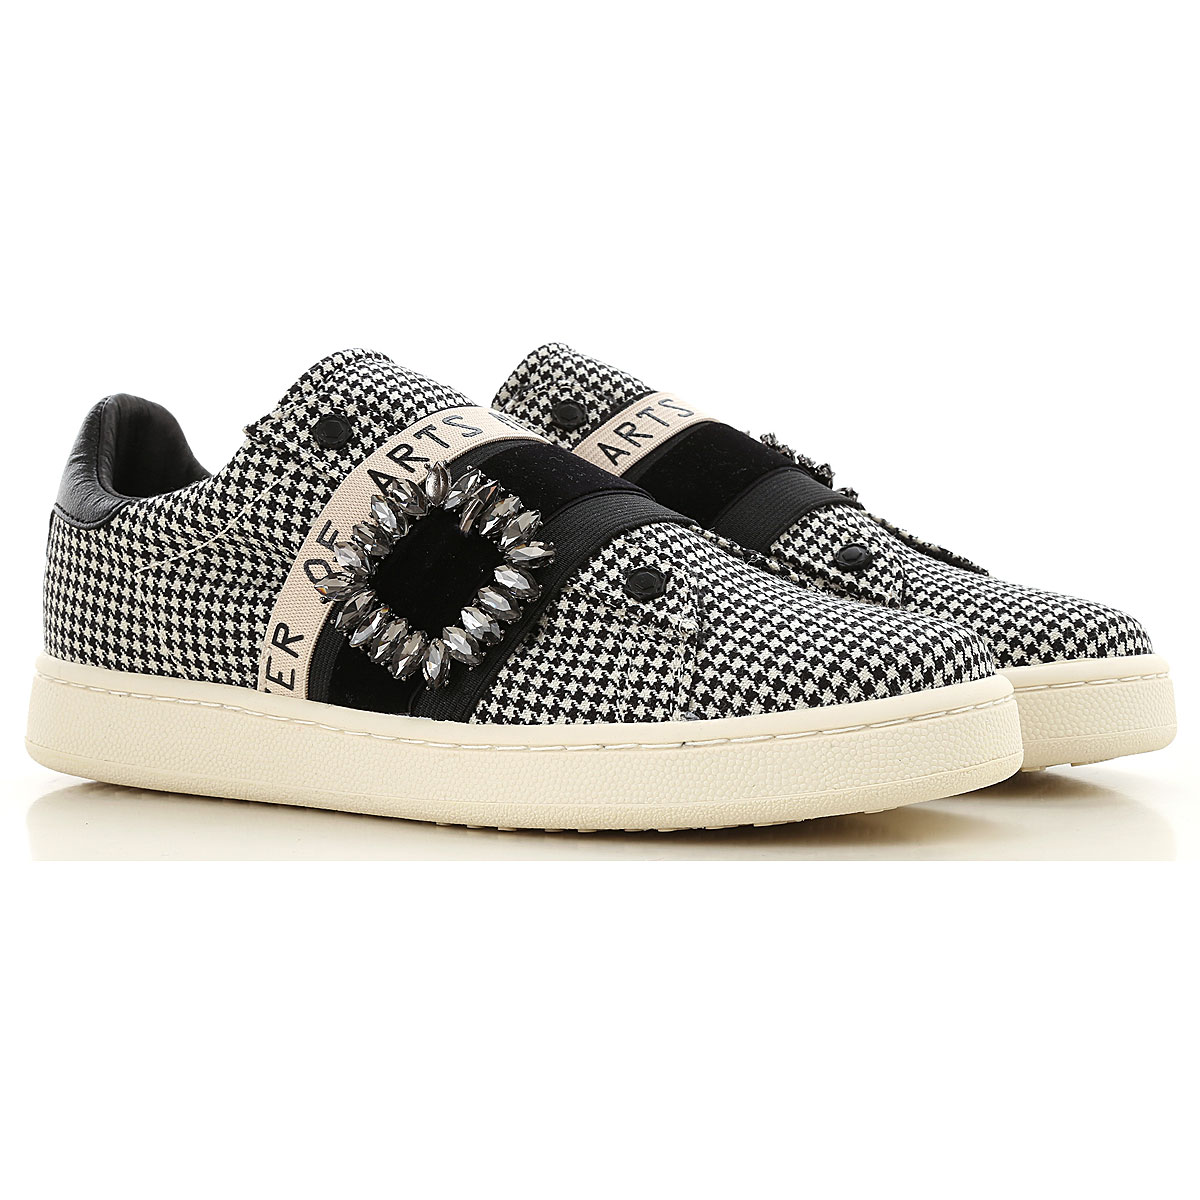 Image of Moa Master of Arts Slip on Sneakers for Women, Cream, Canvas, 2017, 10 6 7 8 9